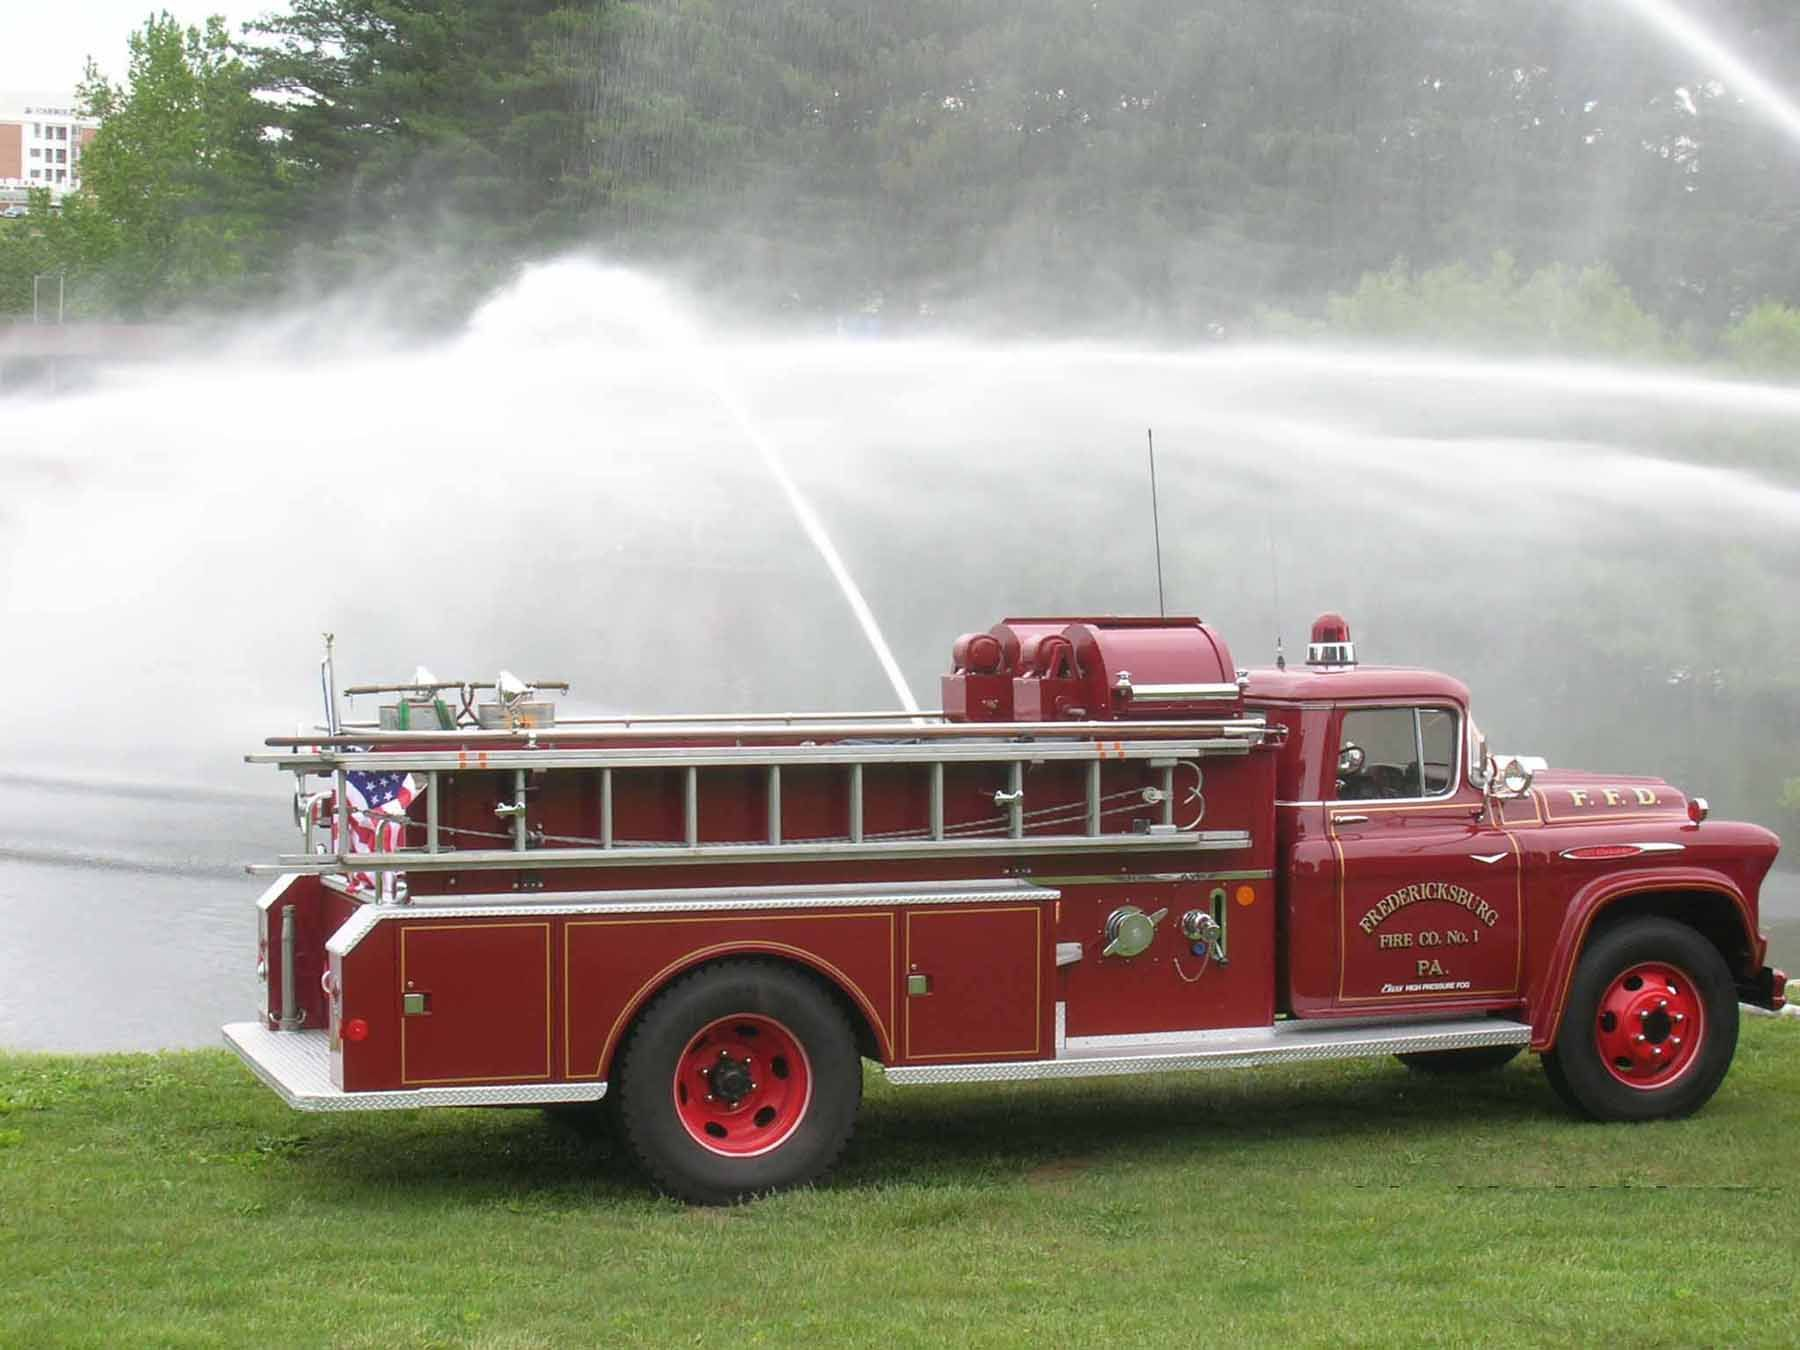 1956 Chevy 4400 Truck See The Big View Of The Fire Trucks In